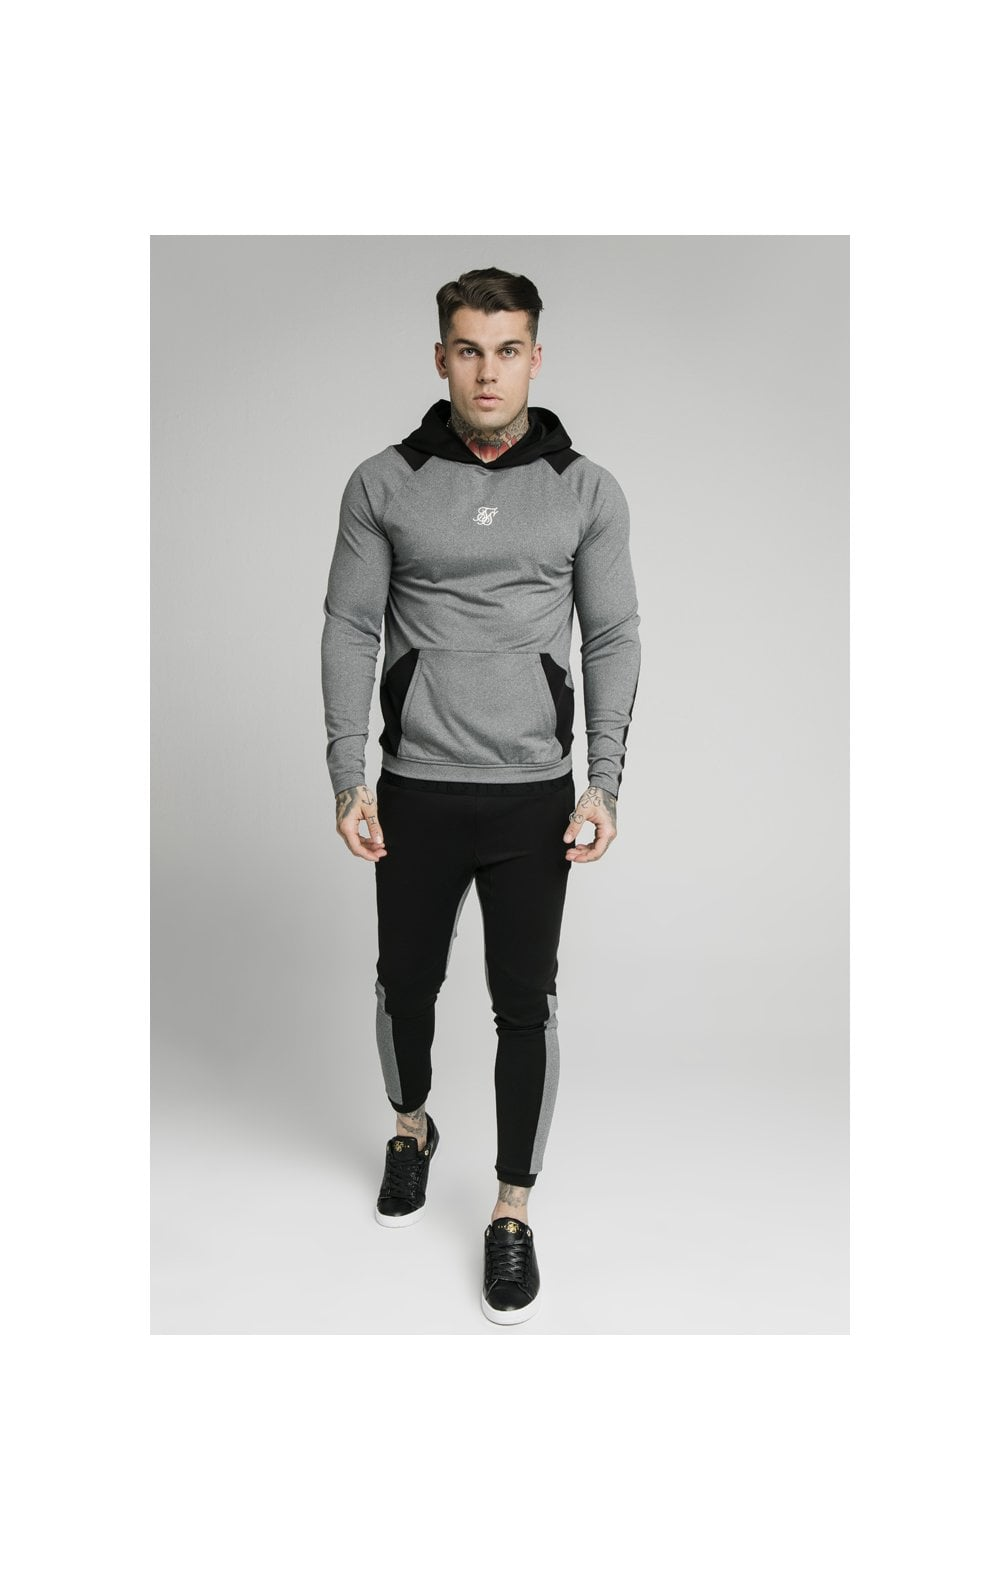 Load image into Gallery viewer, SikSilk Endurance Overhead Hoodie – Grey & Black (1)